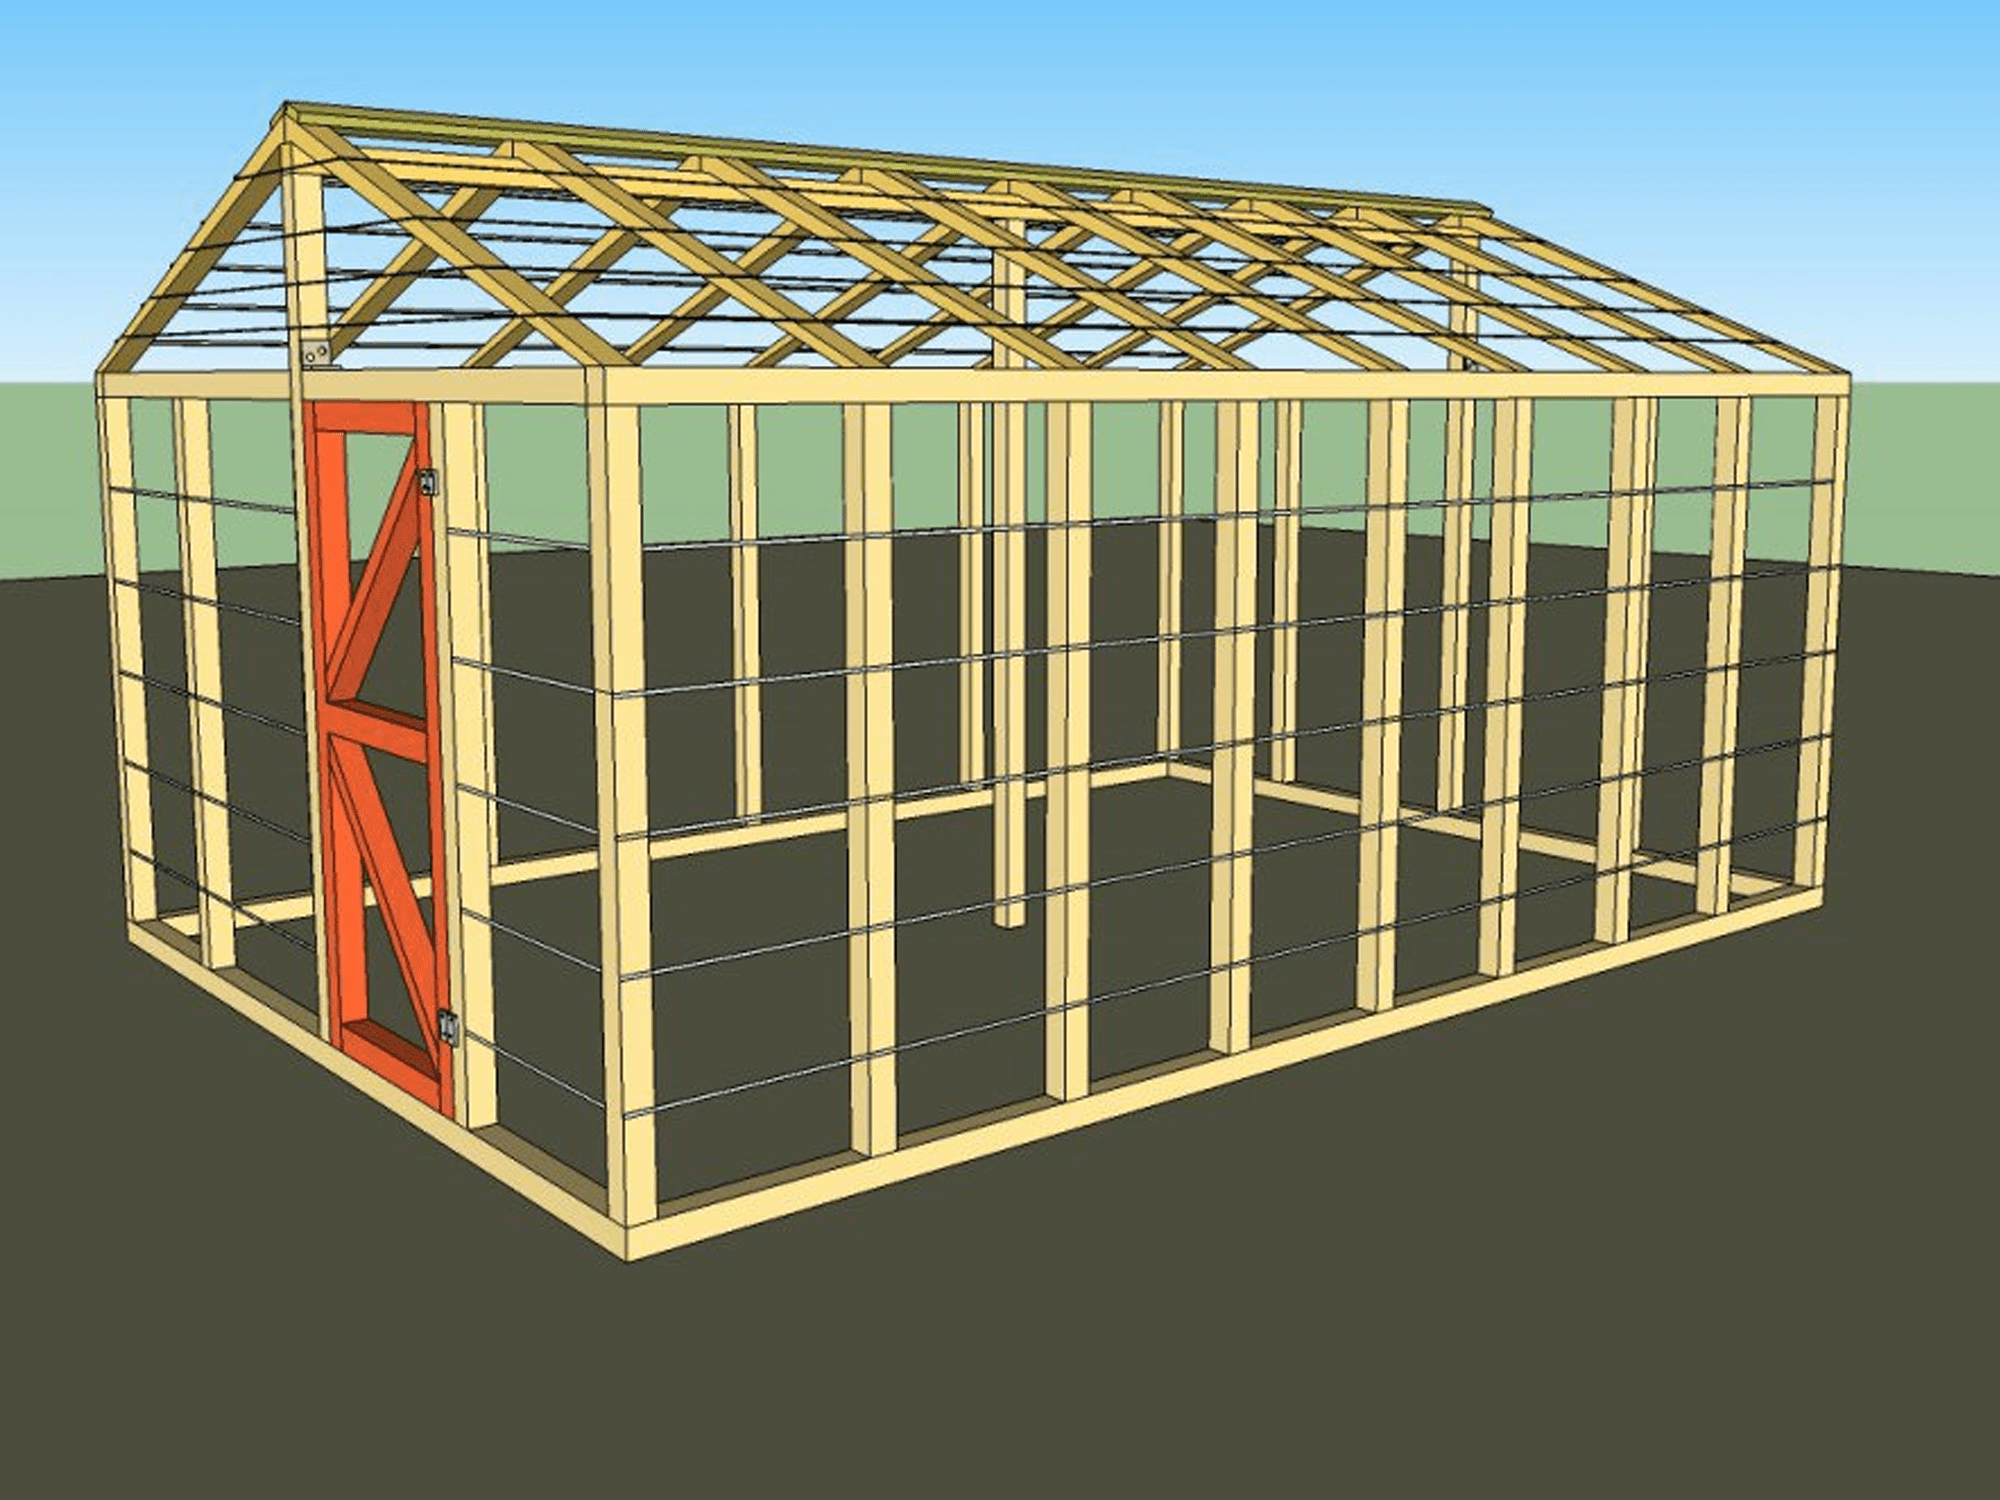 Homemade pvc greenhouse plans for Build a house online free